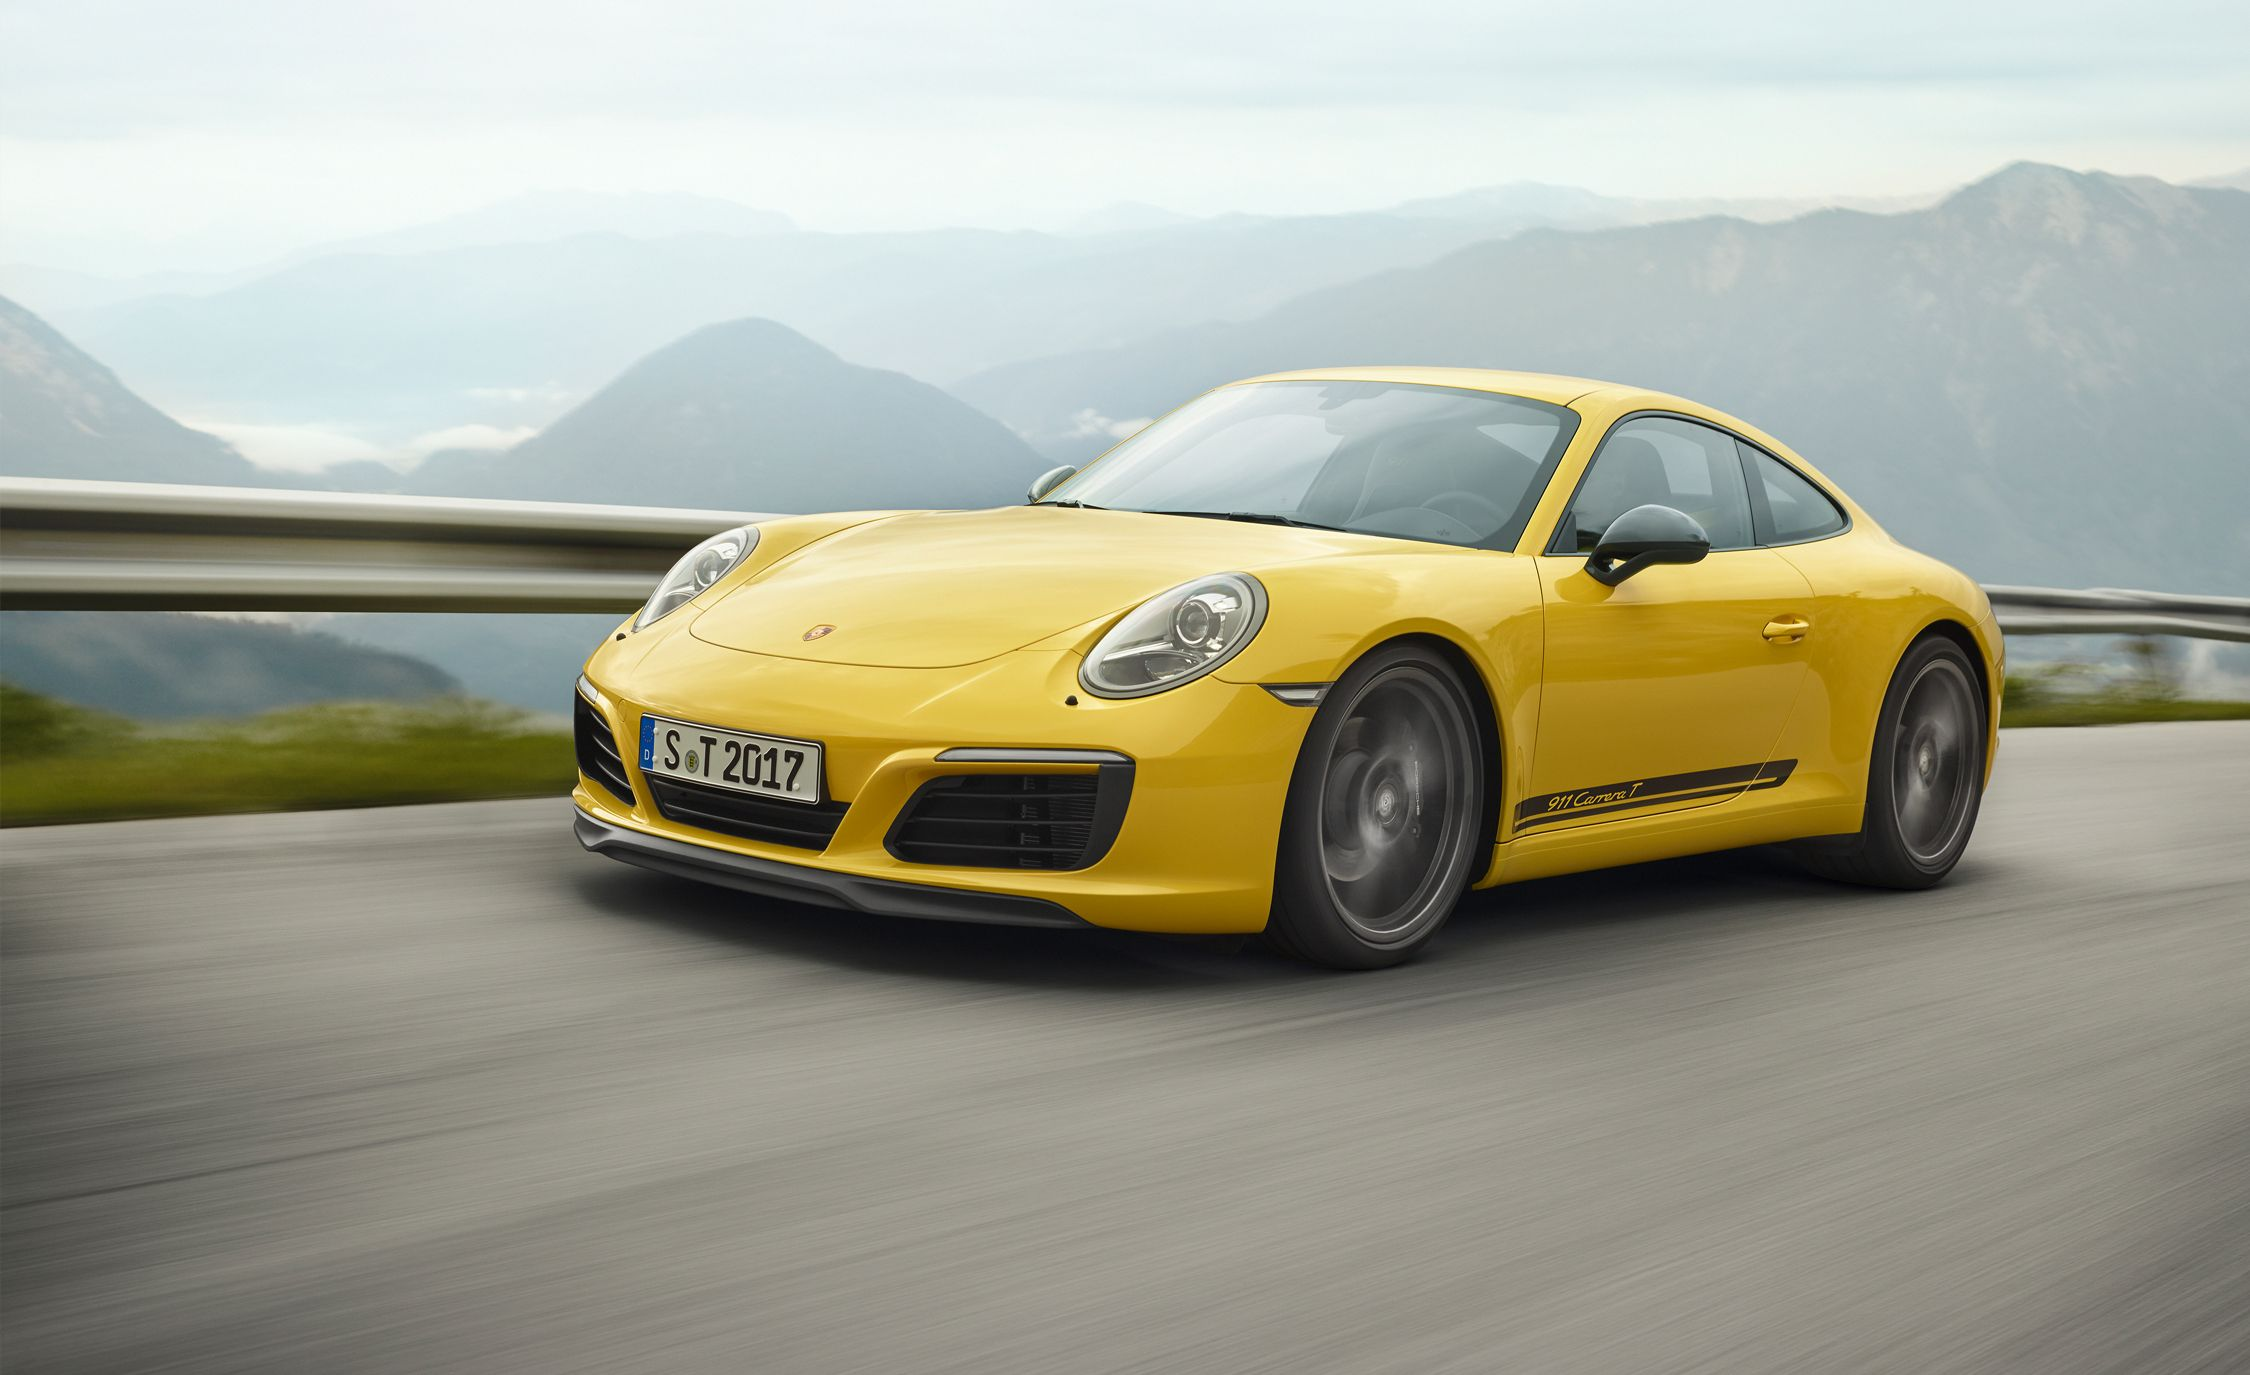 2018 Porsche 911 Carrera T: The Purist's Base Model